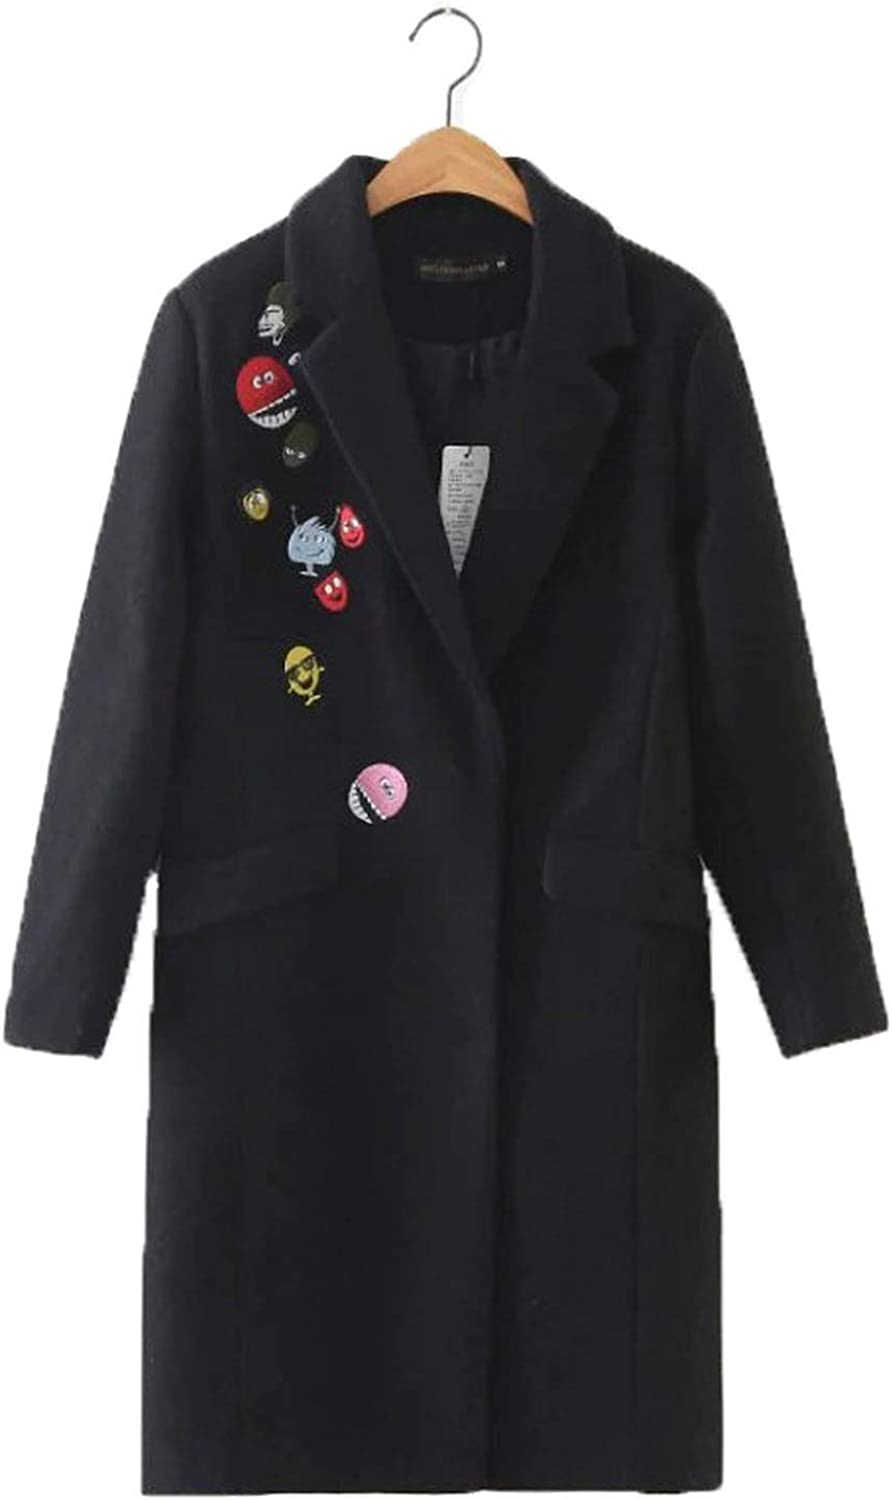 Romantico Autumn and Winter Long Wool Coat Casual Embroidered Coat